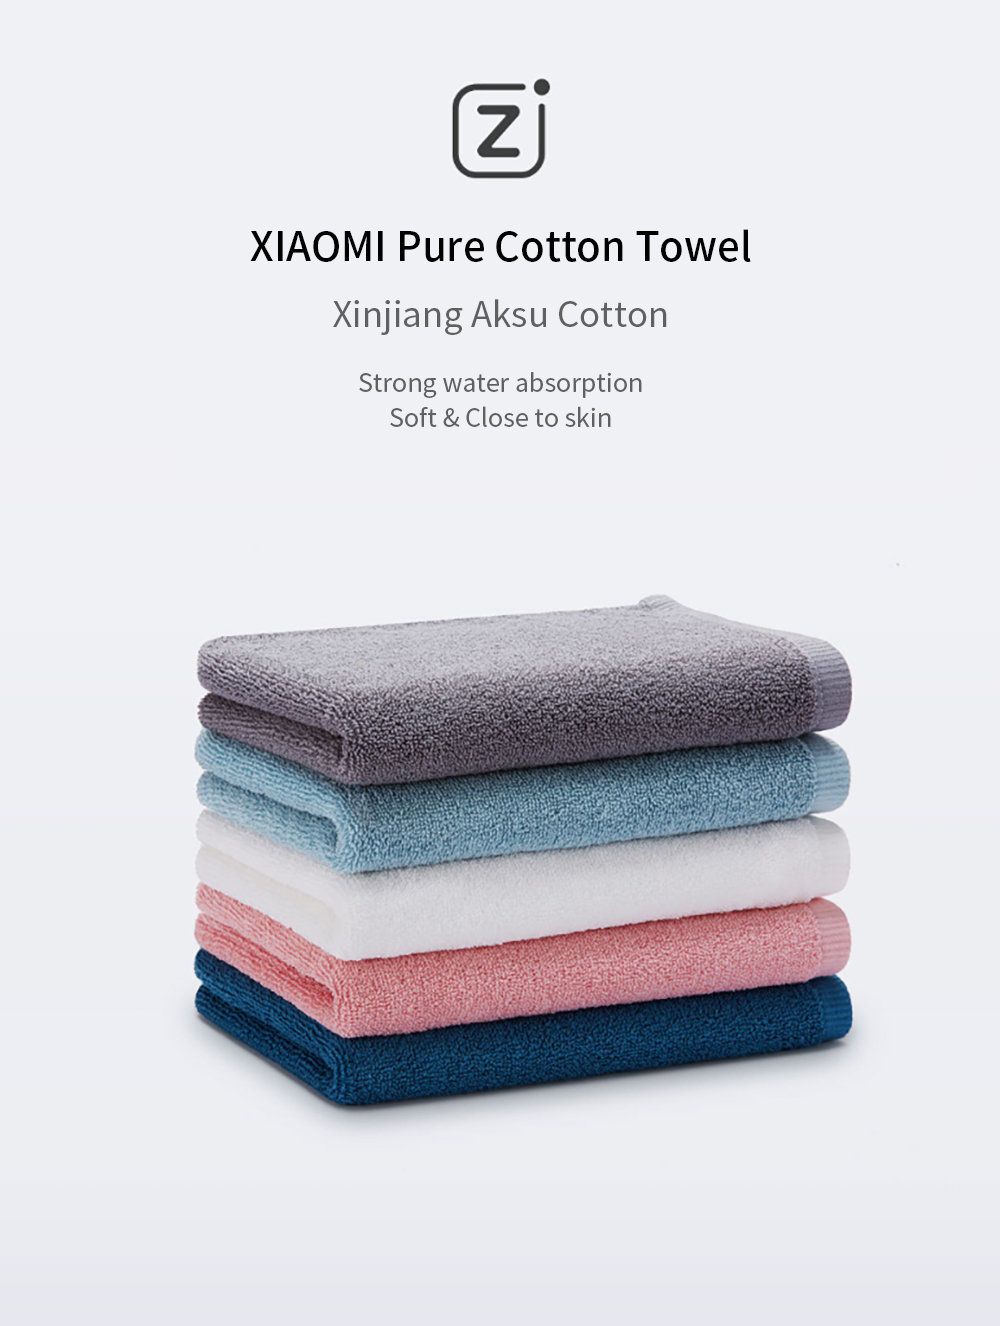 Hot Sale Original Xiaomi Zsh Towel Mi 100% Cotton Absorption Water Towel High Quality Young Series Xiaomi Facecloth Towel Smart Remote Control